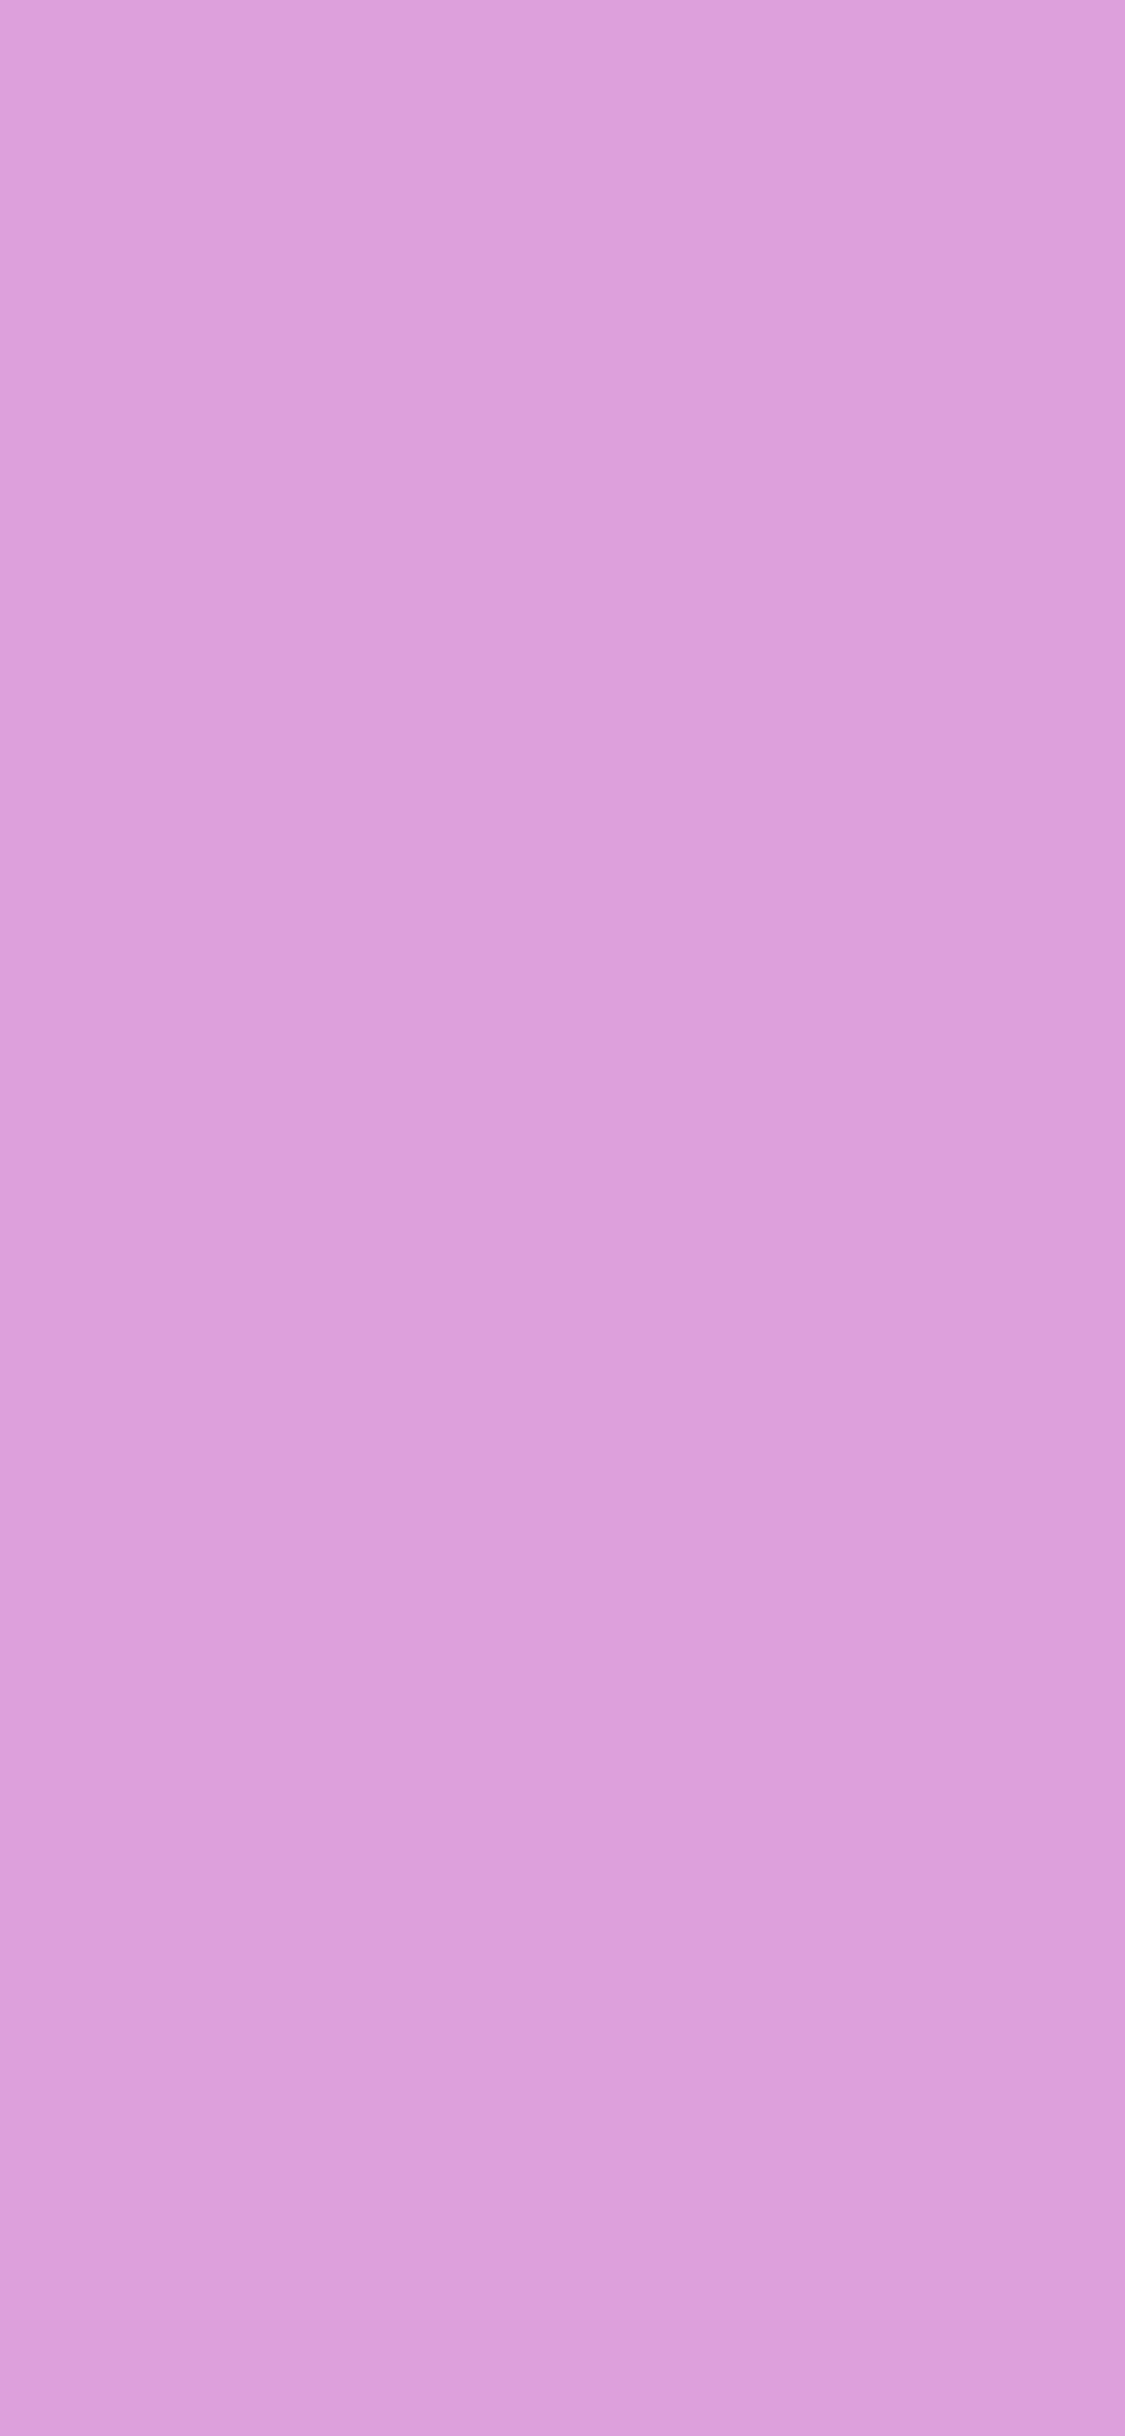 1125x2436 Pale Plum Solid Color Background